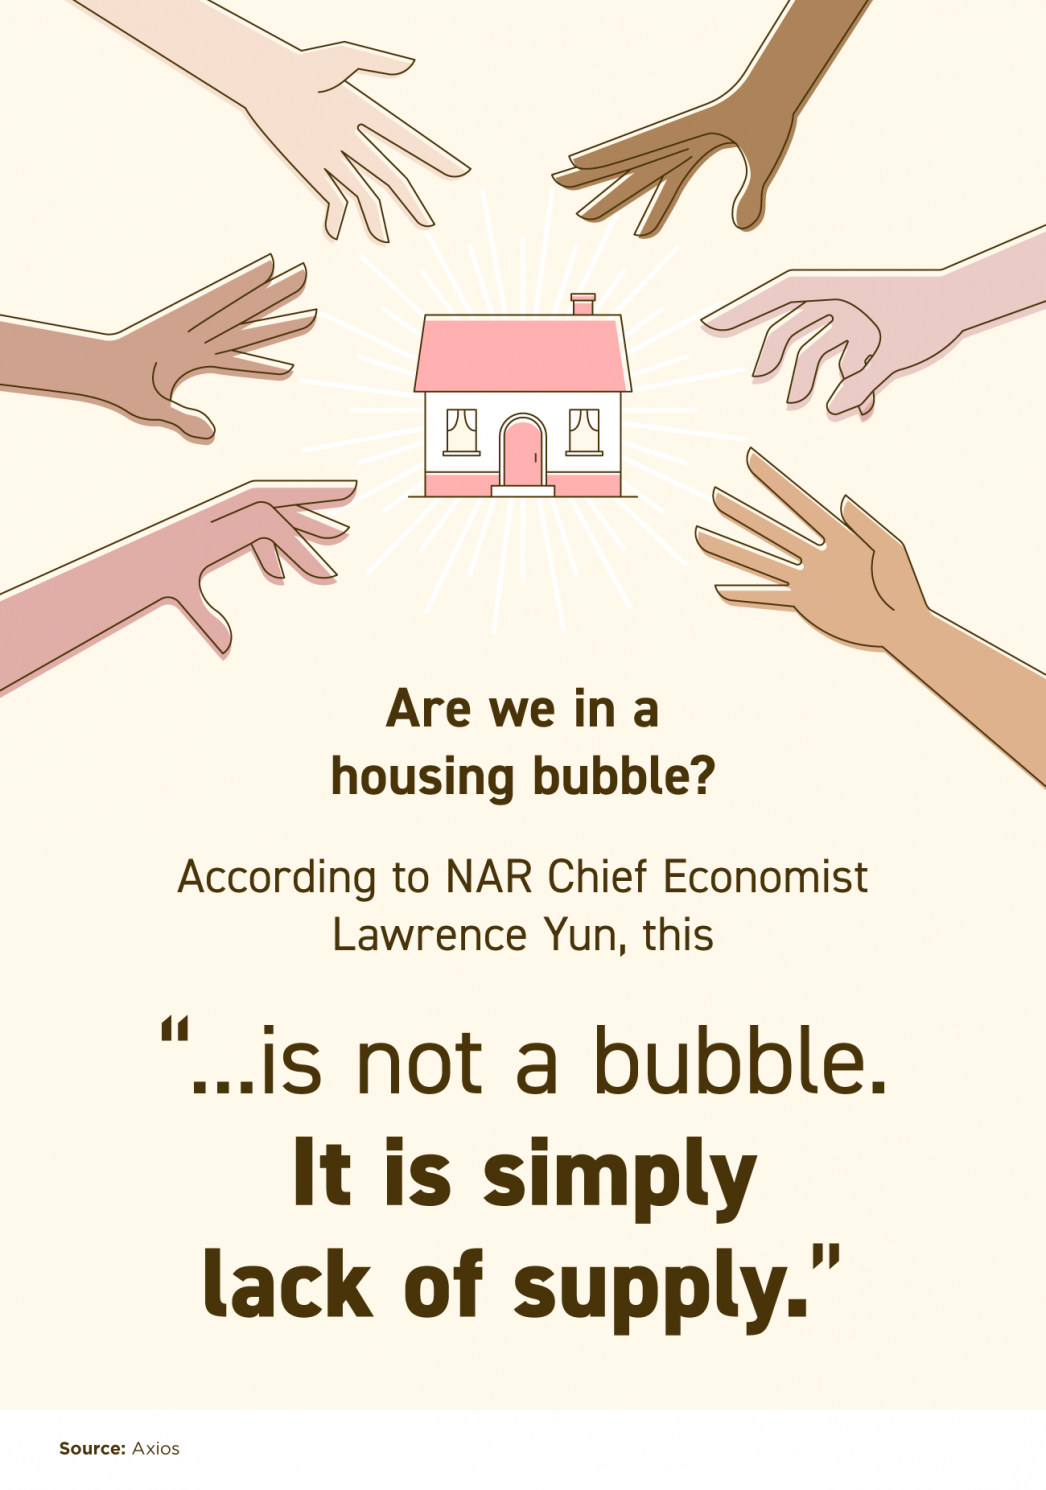 Utah Housing This Isn't a Bubble. It's Simply Lack of Supply